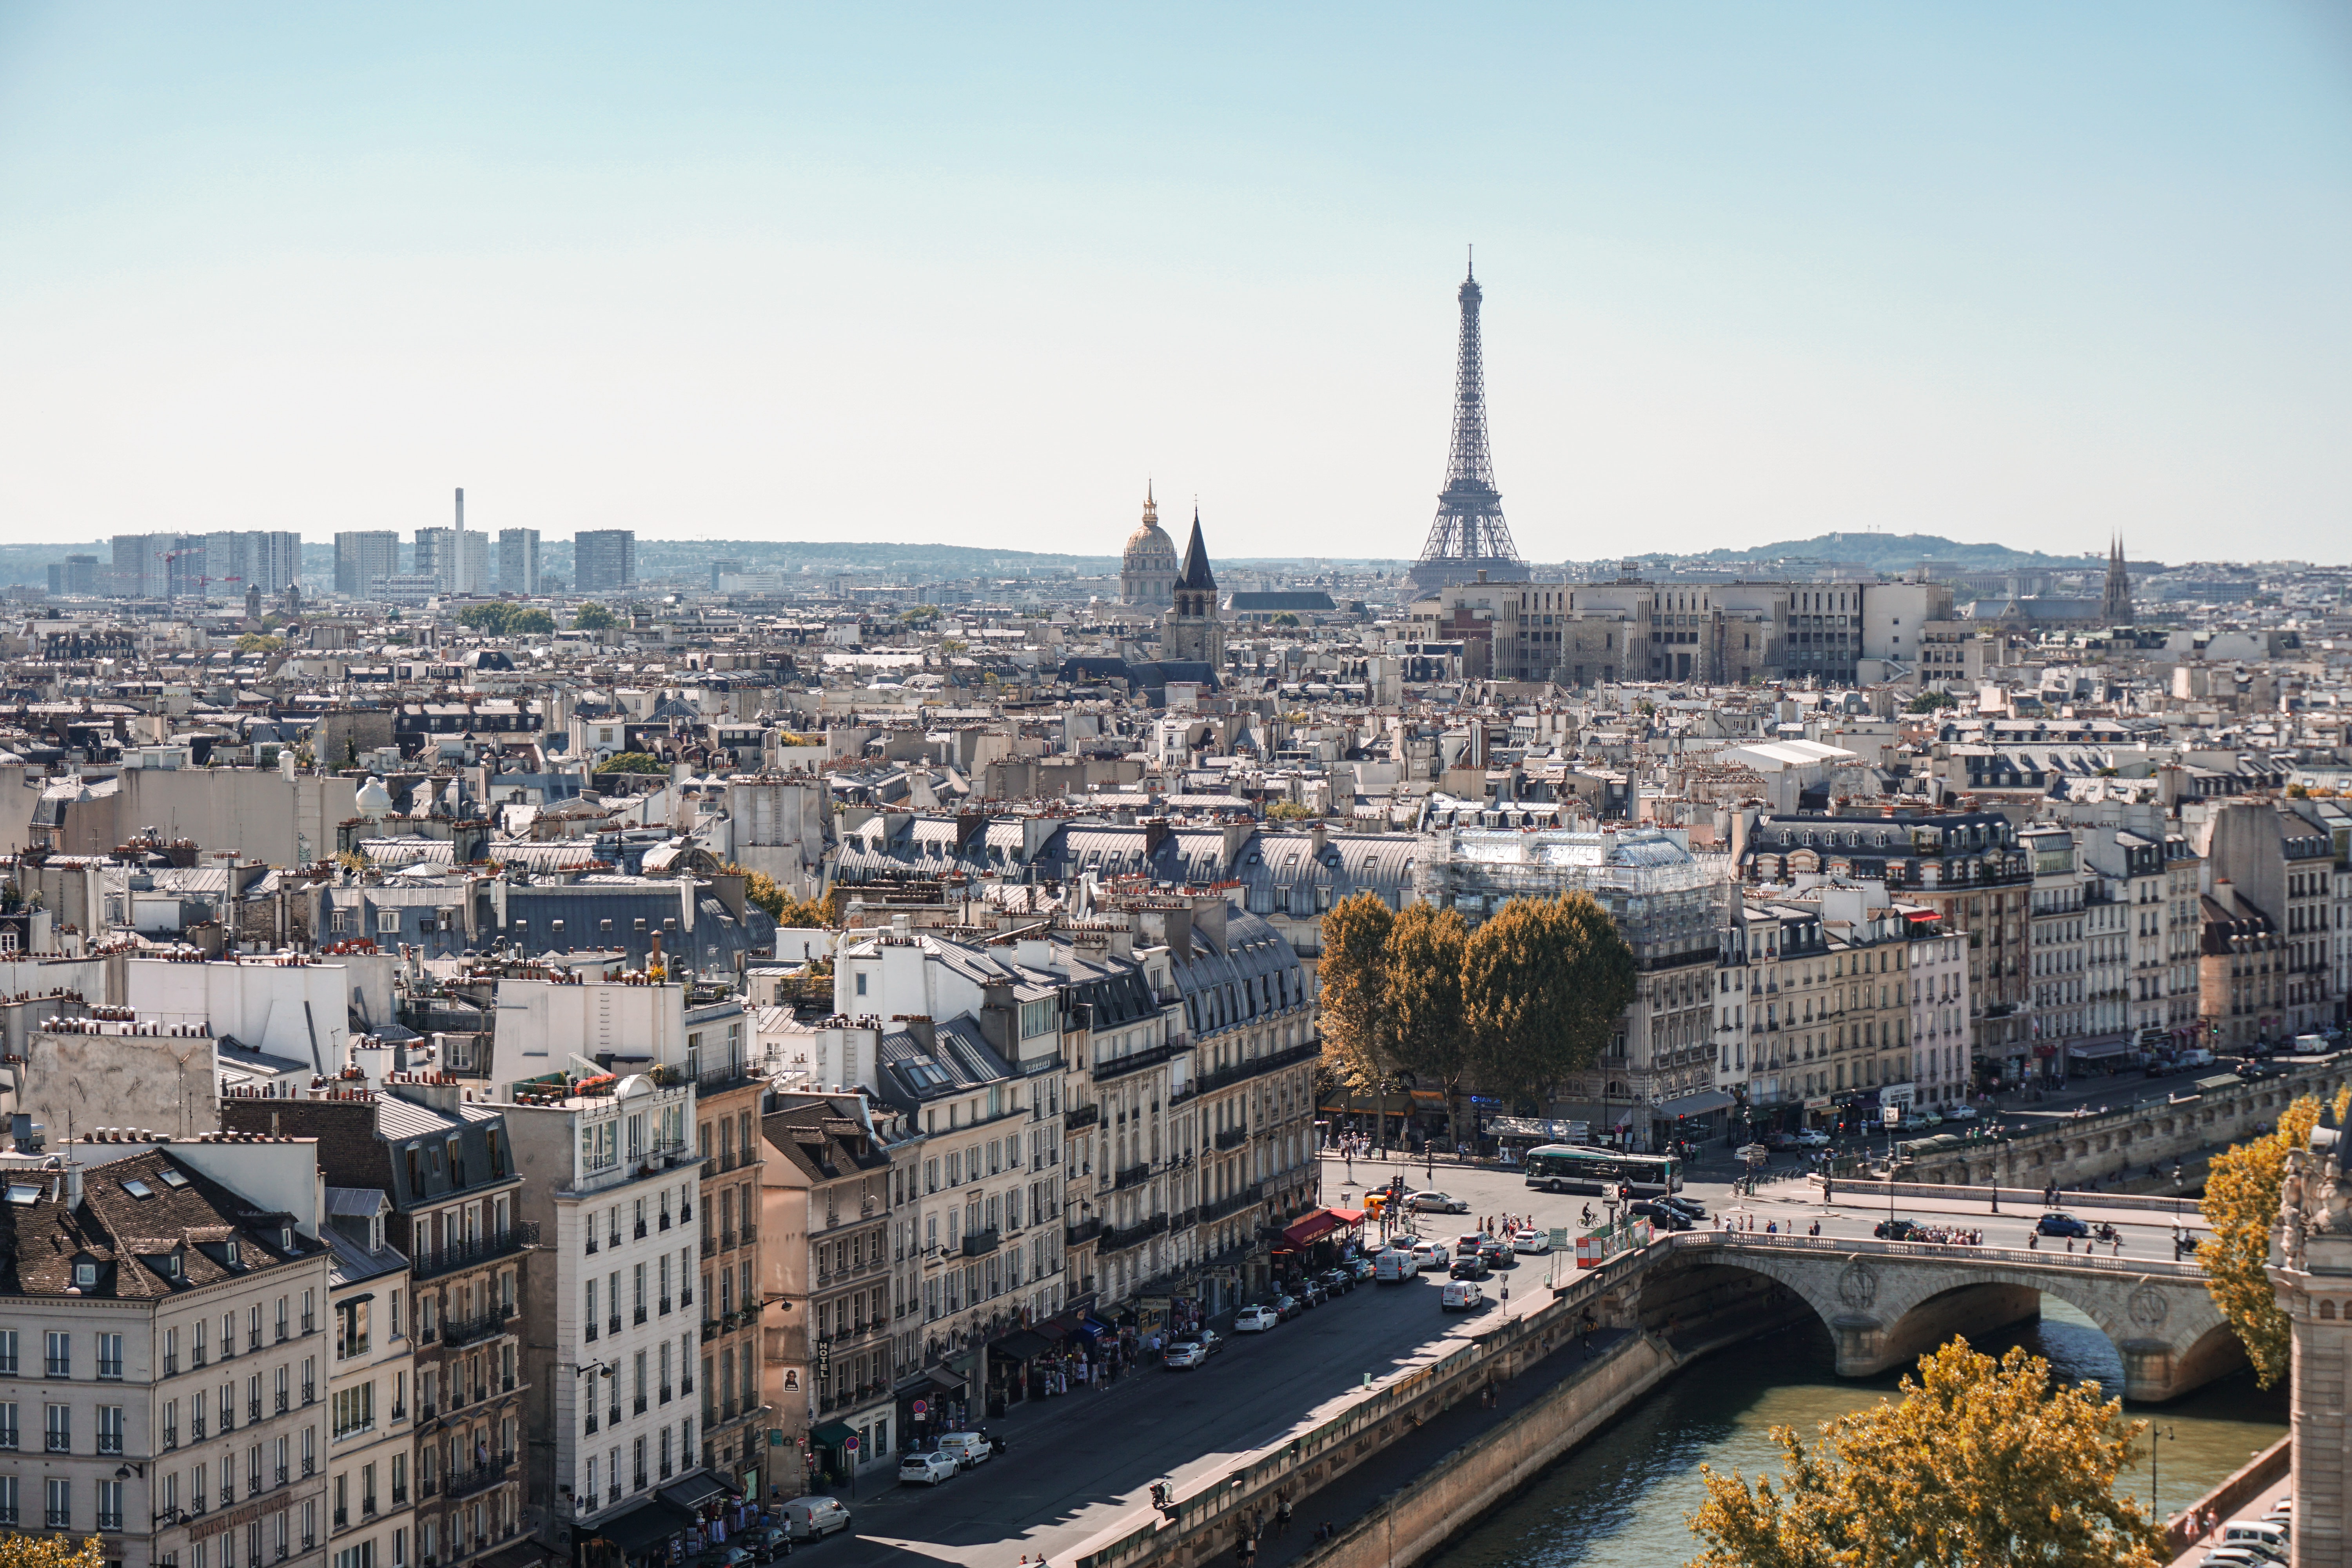 Paris Travel Guide: the city of Paris from above